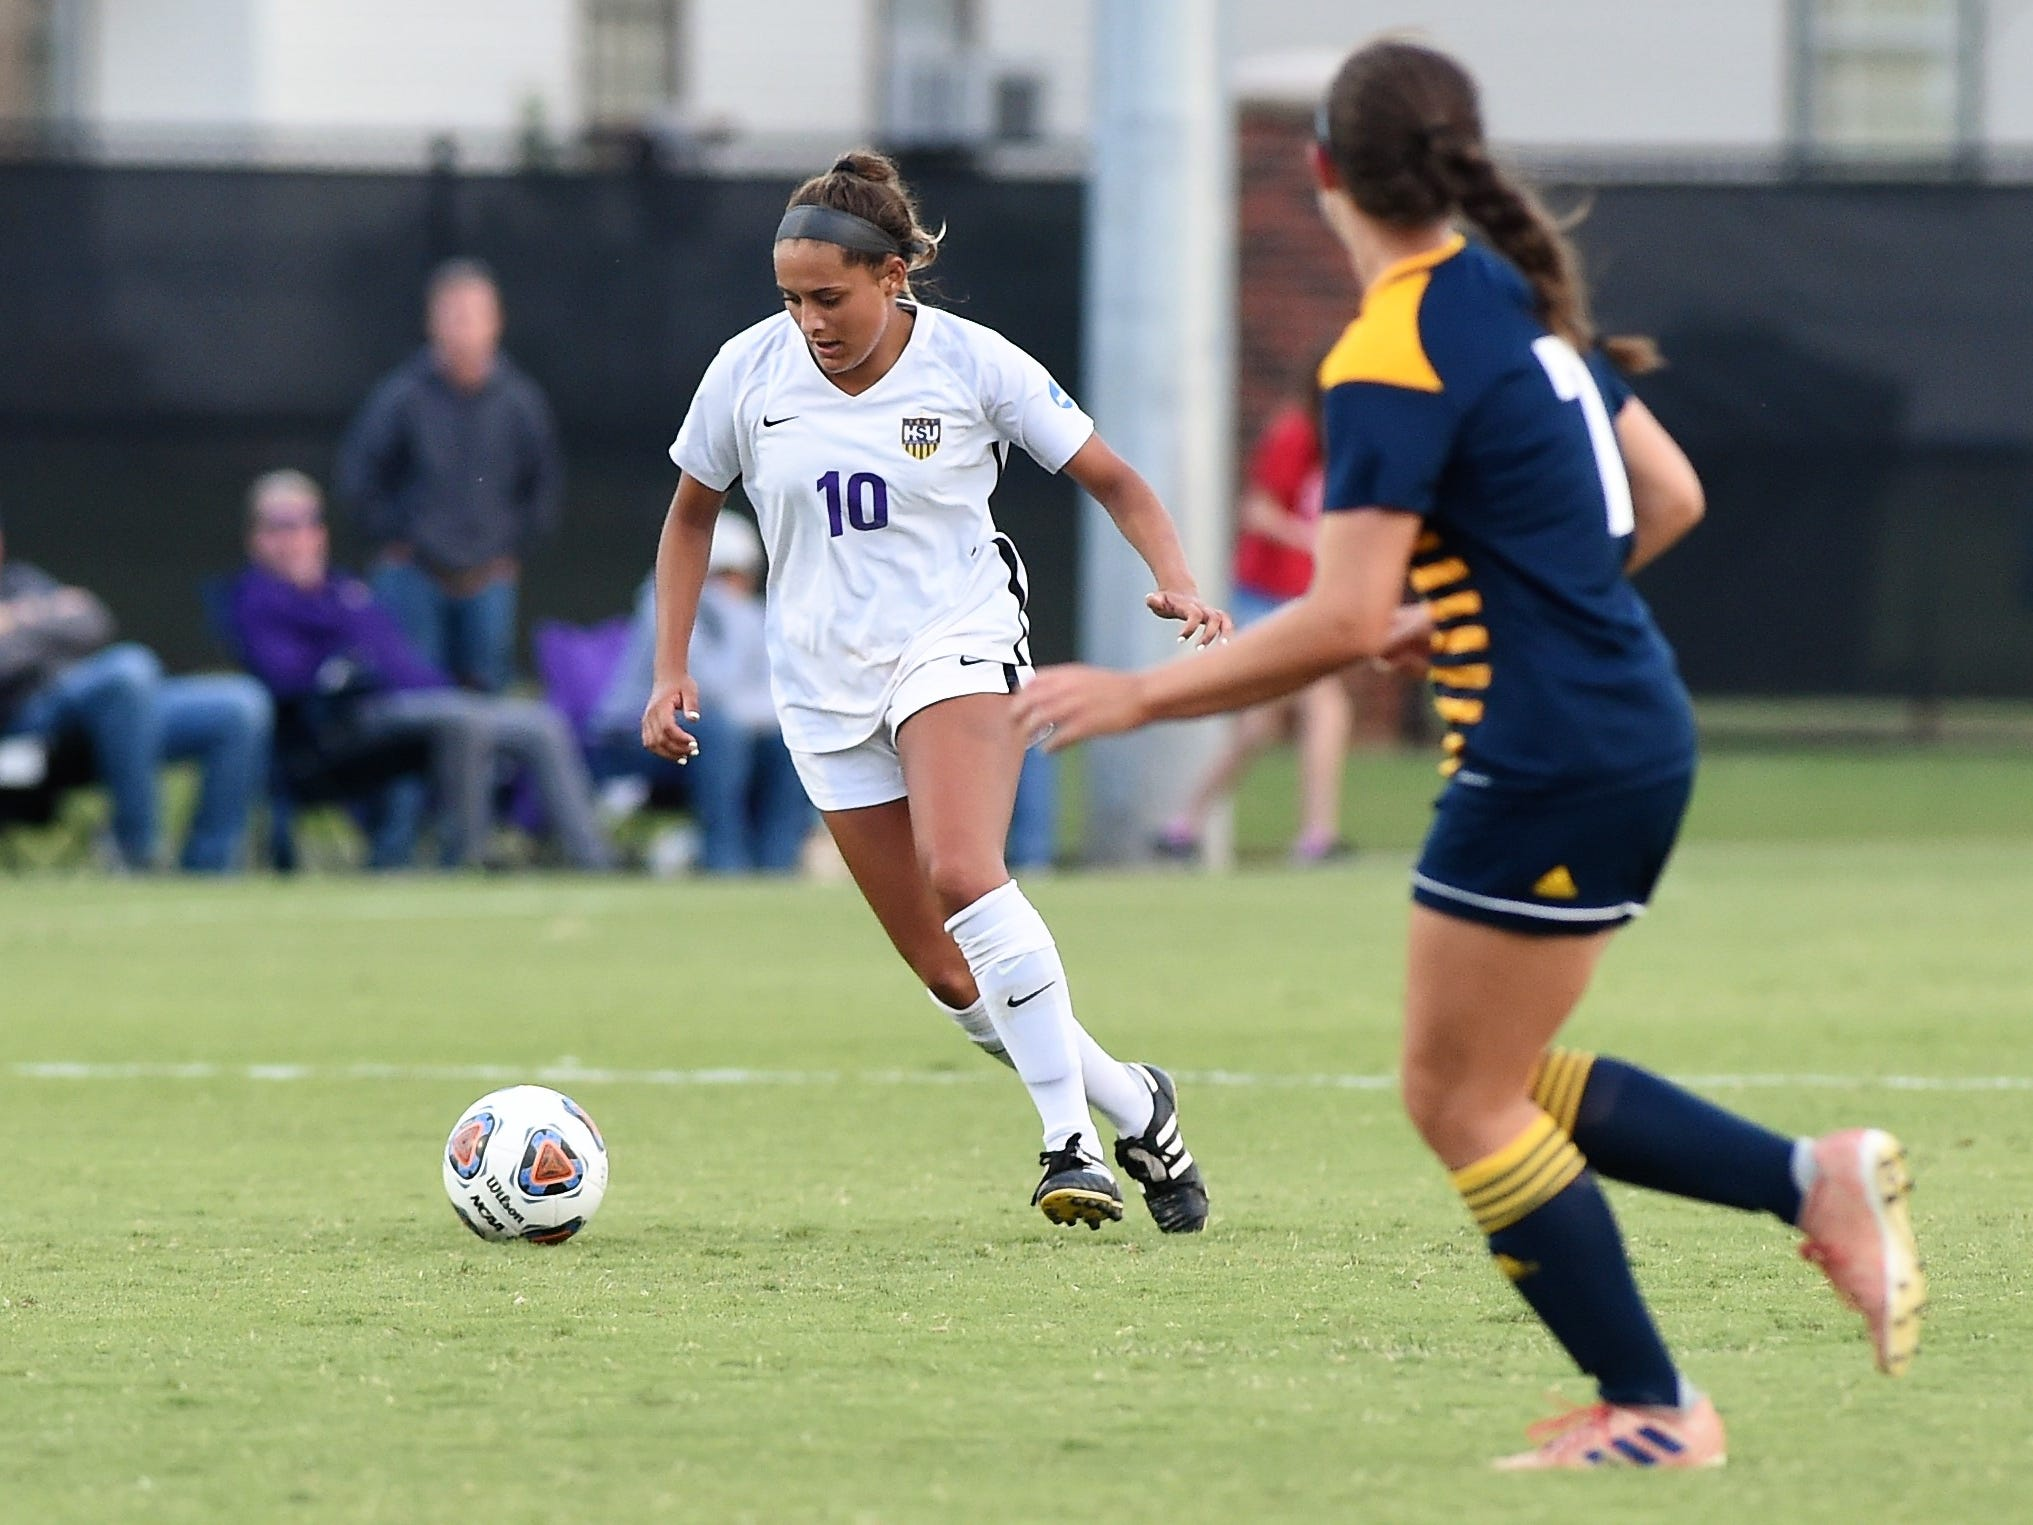 Hardin-Simmons forward Randie Dennison (10) makes a move with the ball against Howard Payne at the HSU Soccer Complex on Thursday, Oct. 11, 2018. The Cowgirls won 4-1.